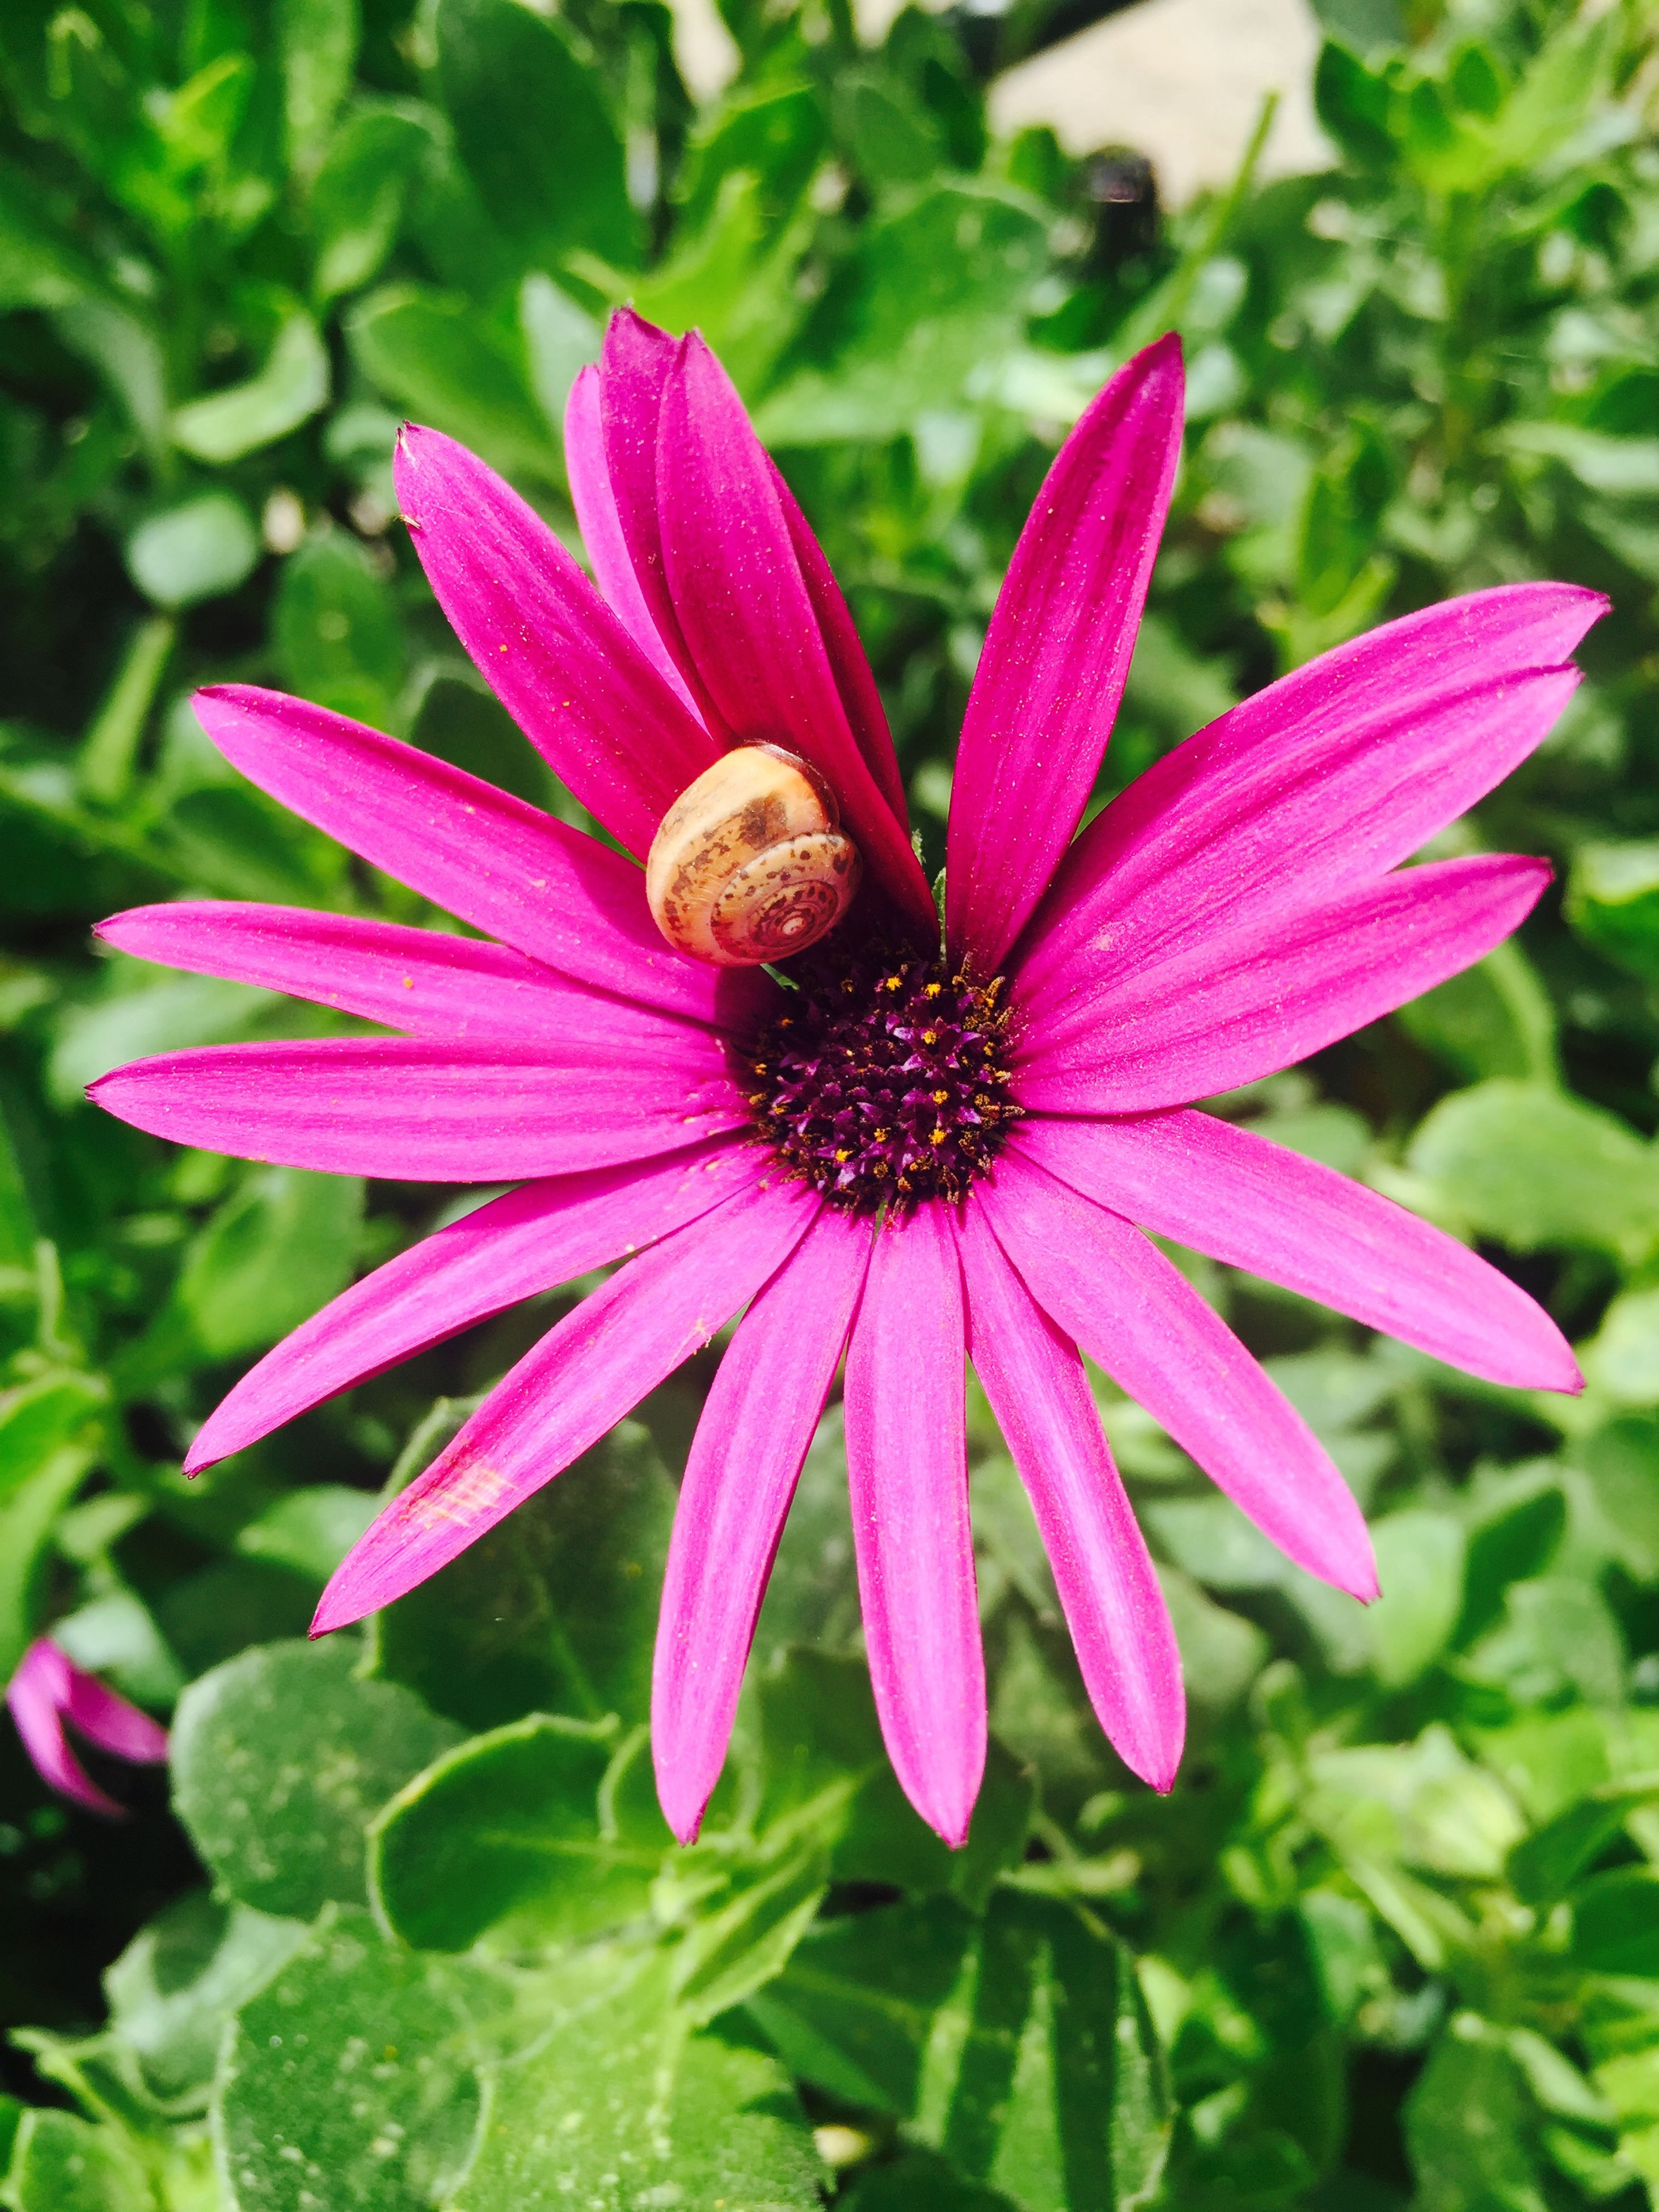 flower, petal, freshness, flower head, fragility, close-up, growth, single flower, focus on foreground, beauty in nature, blooming, red, plant, pollen, nature, pink color, high angle view, in bloom, drop, wet